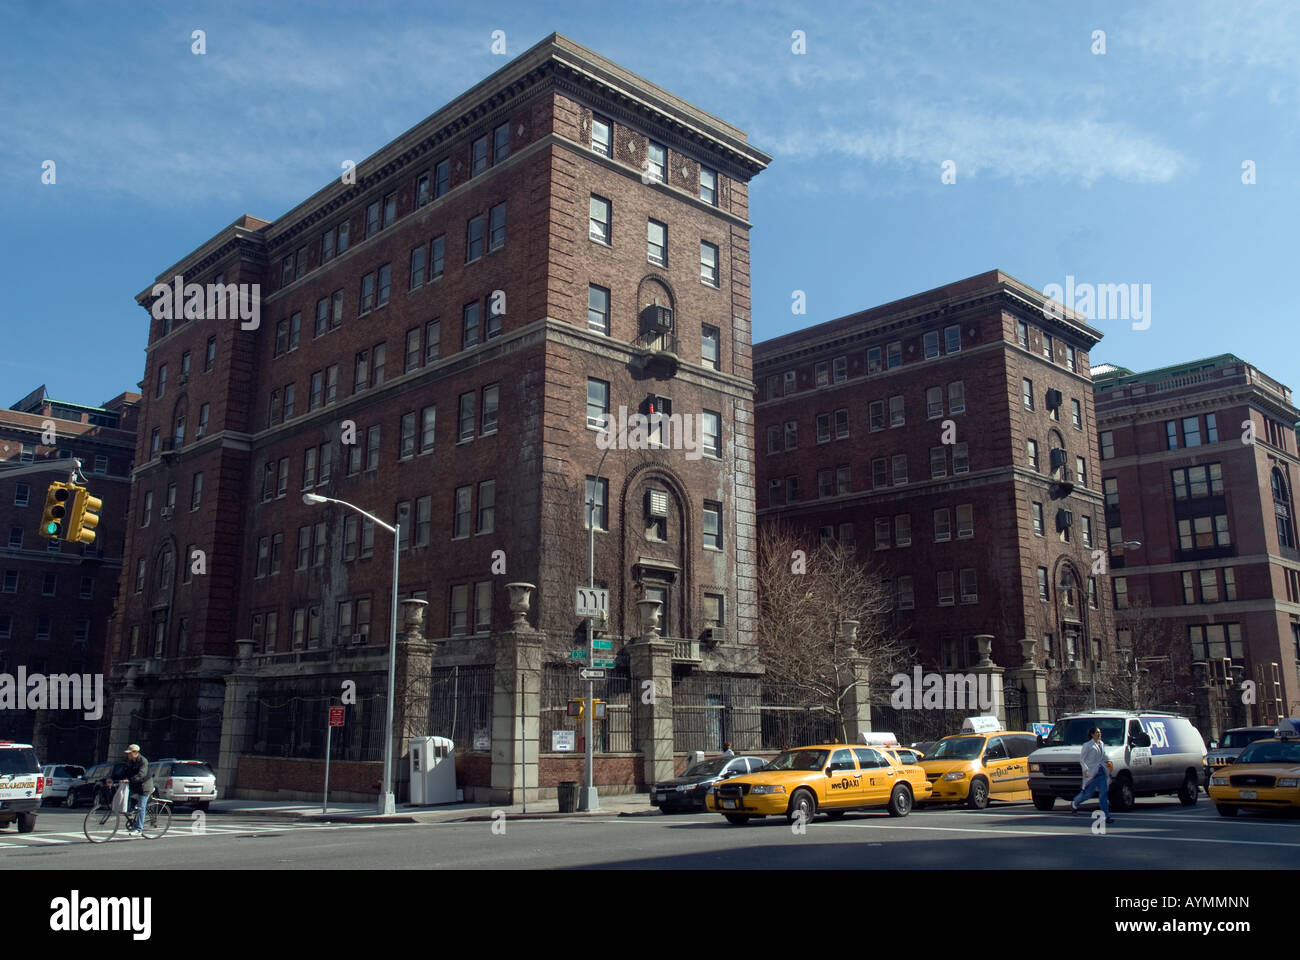 The former psychiatric ward of Bellevue Hospital on First Avenue in New York - Stock Image